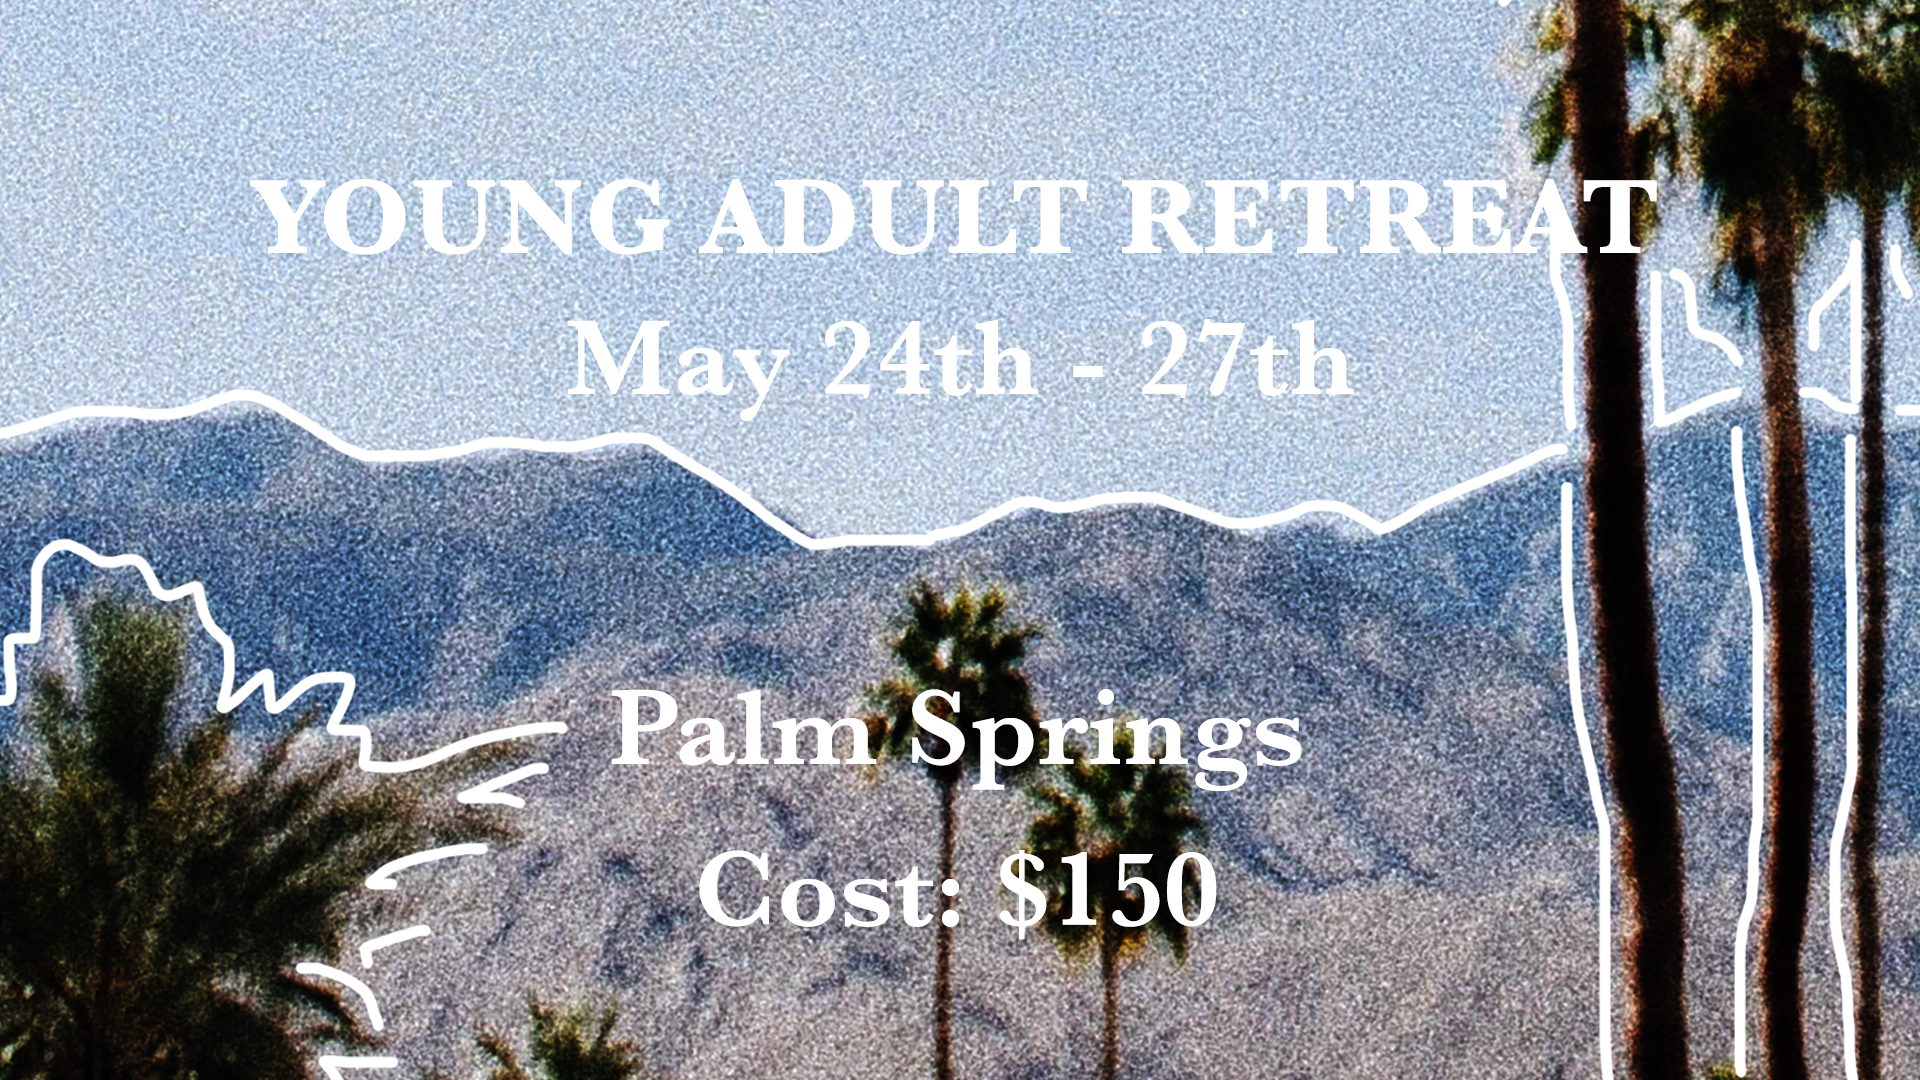 young-adult-retreat image